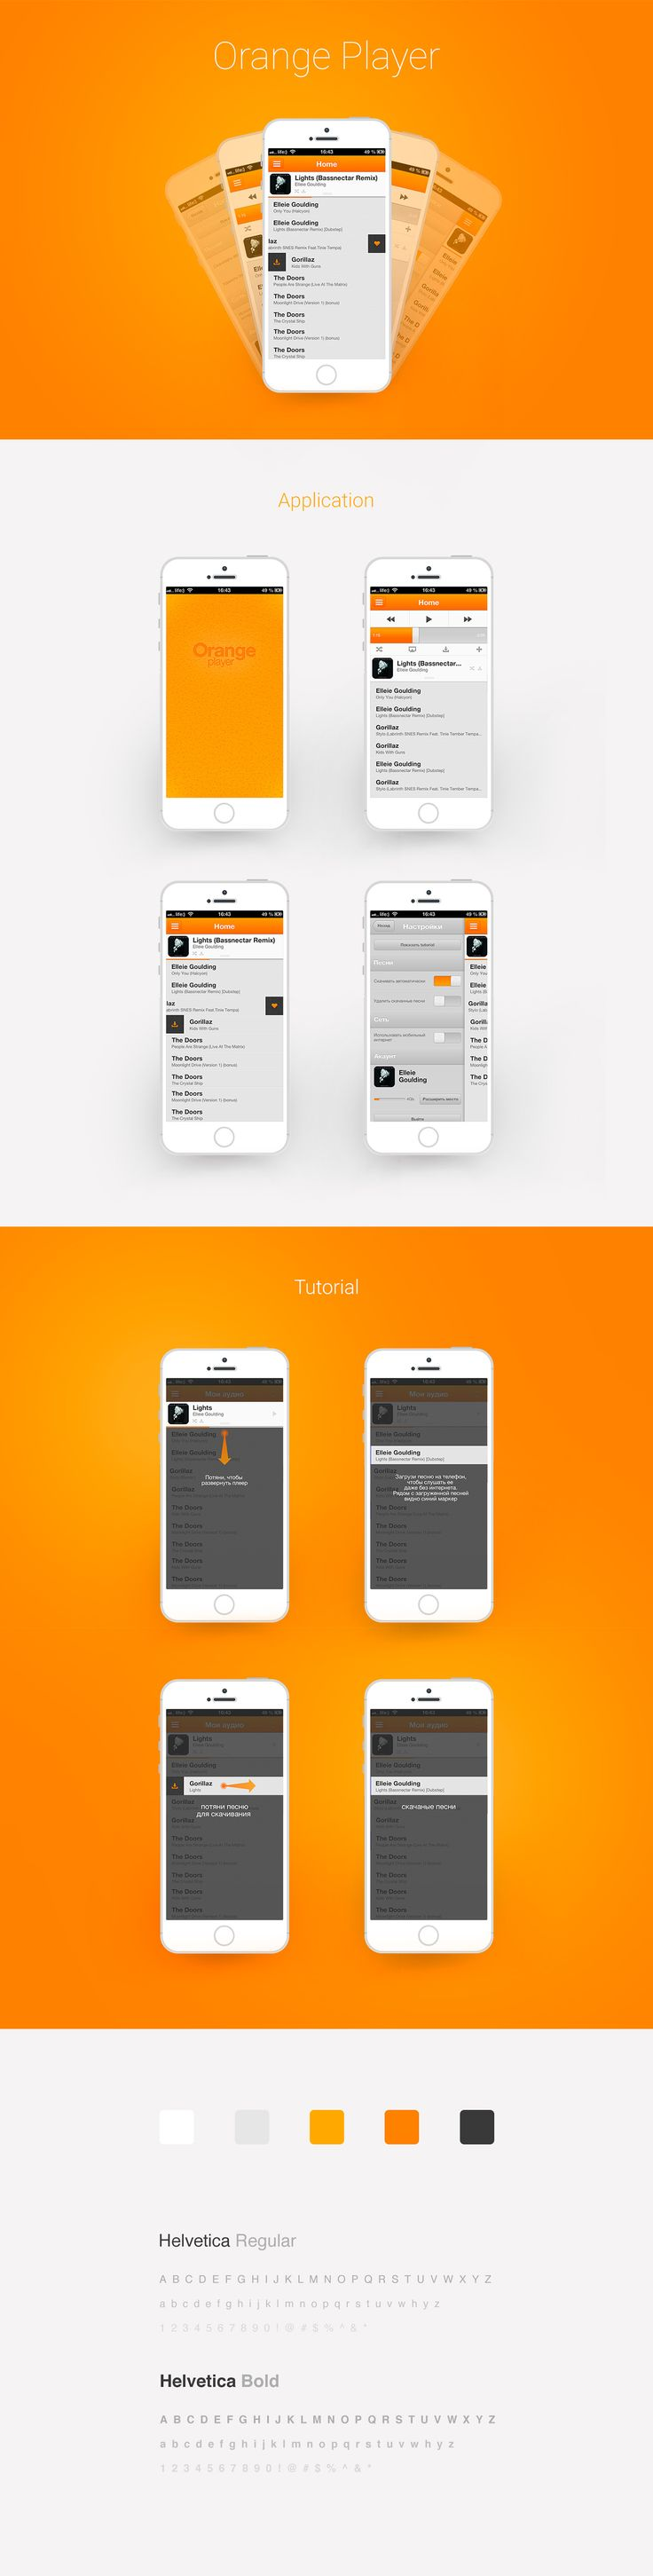 Orange player on Behance